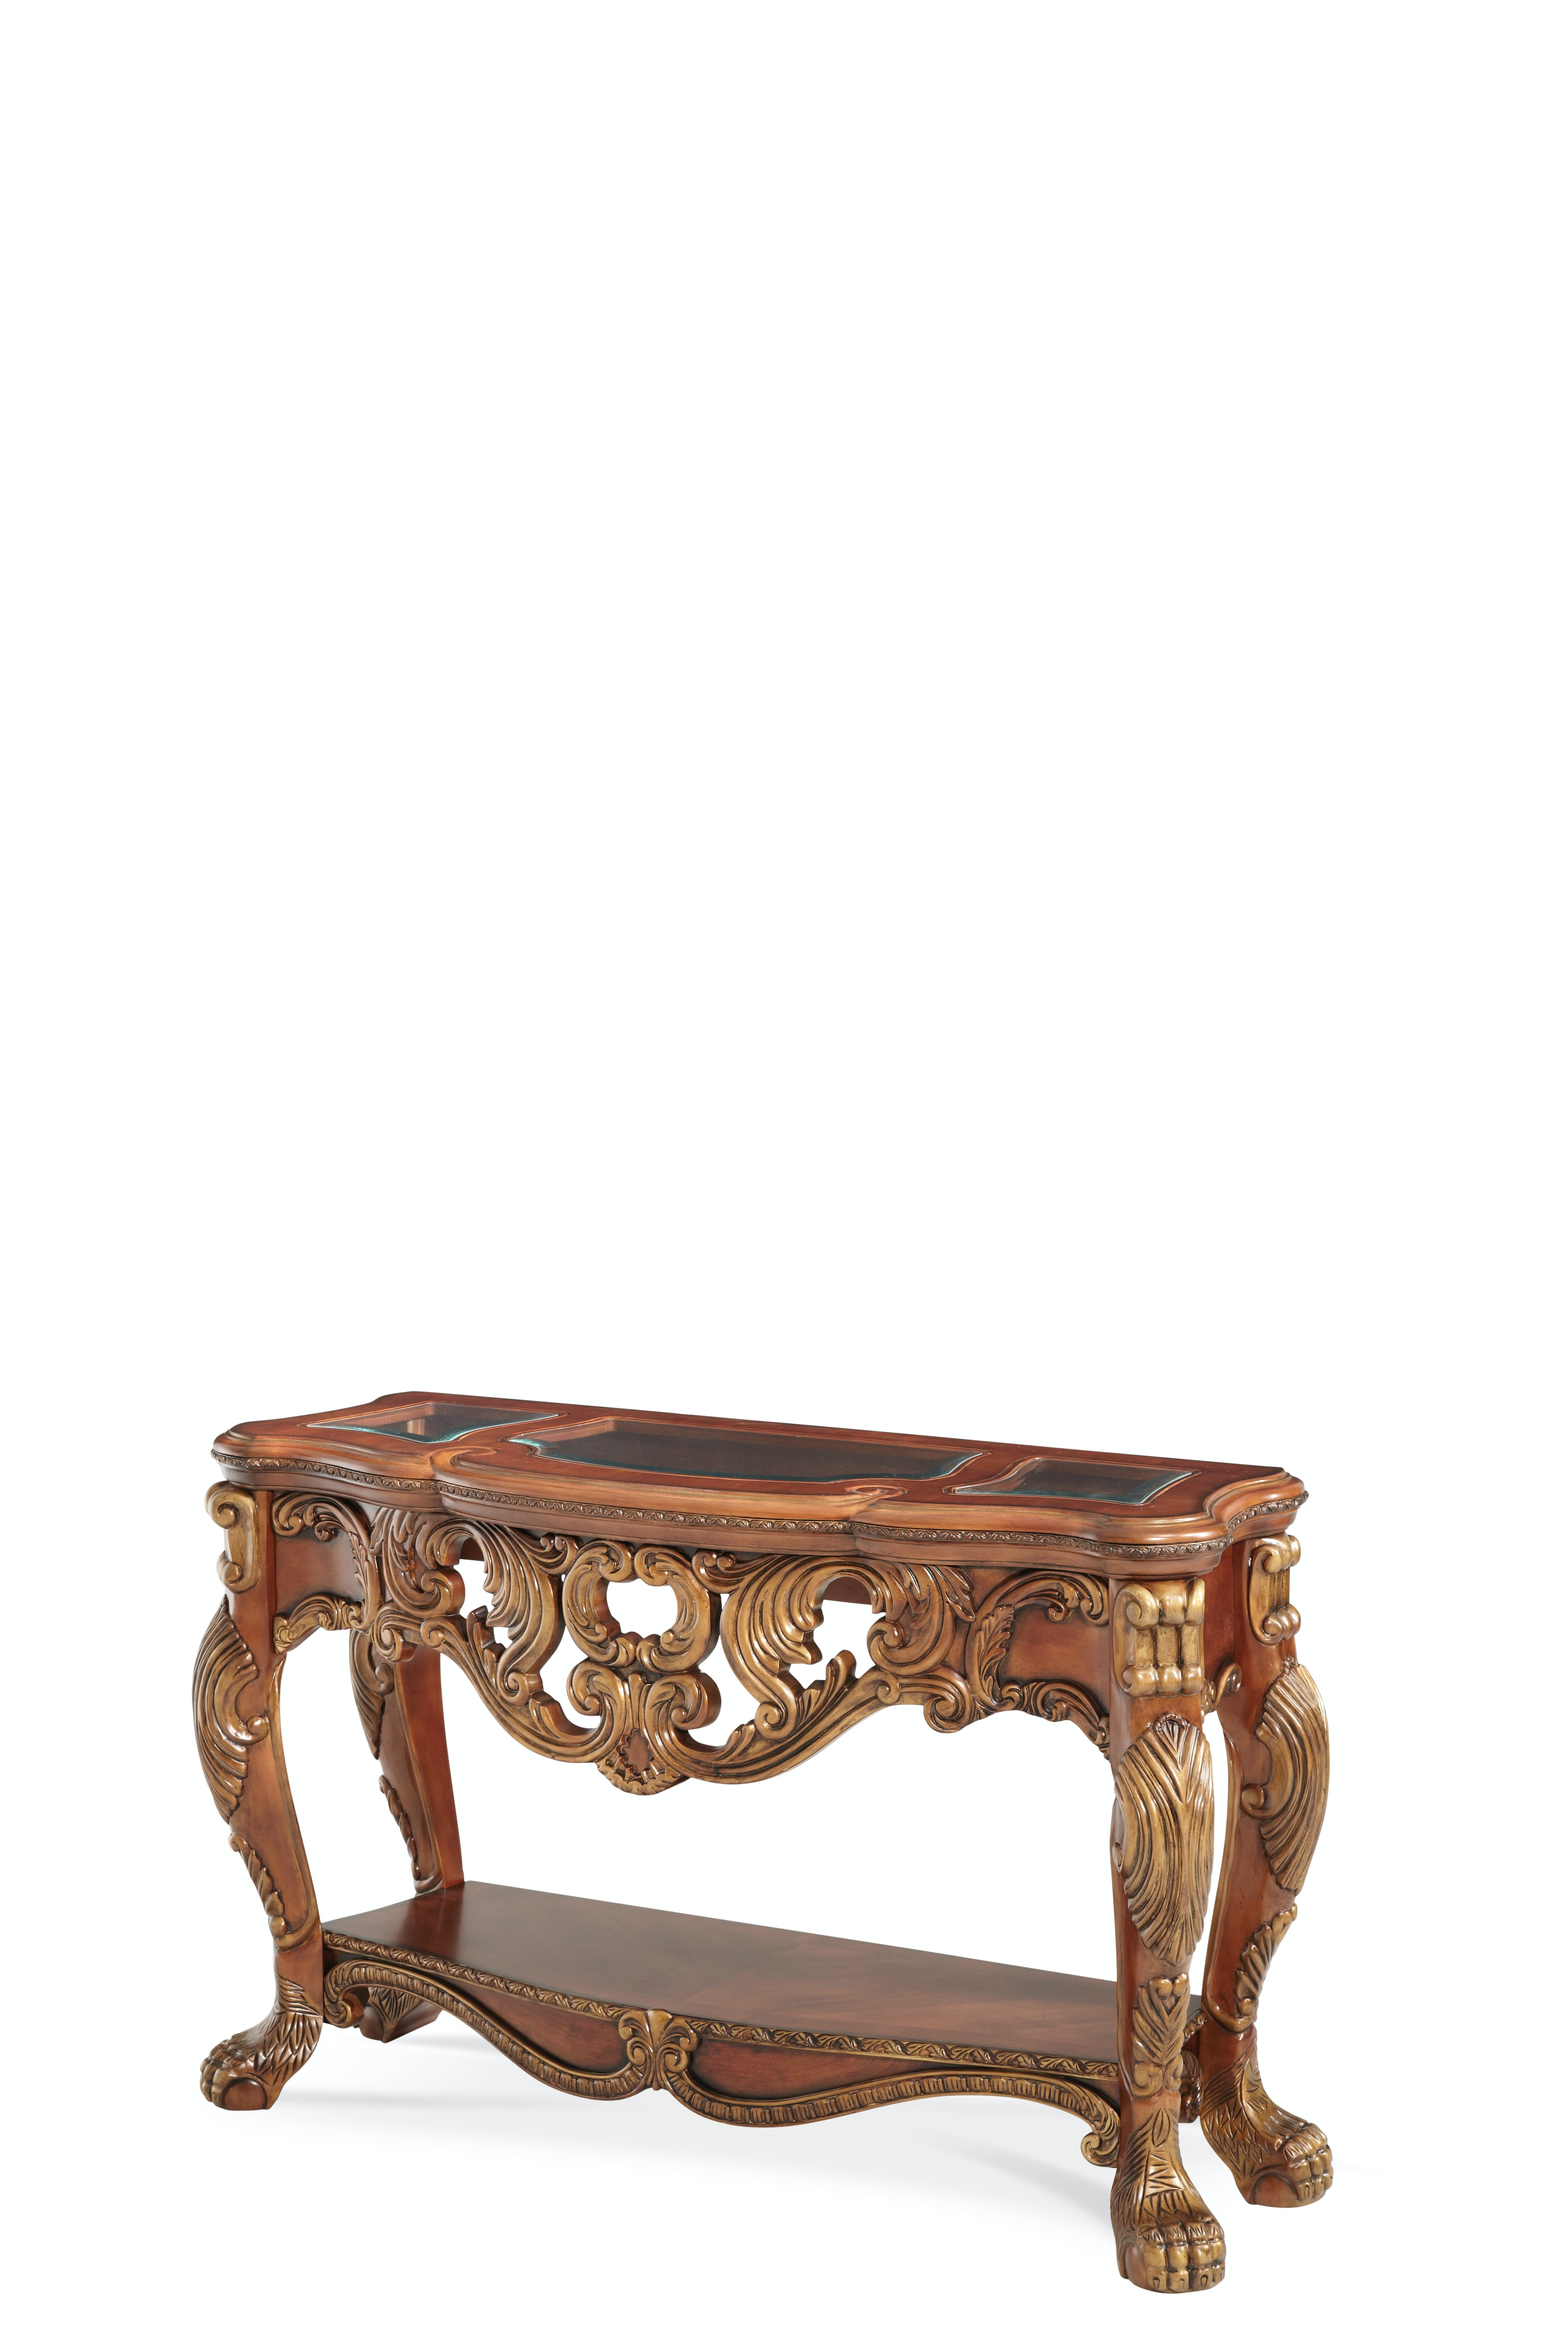 Lovely Aico Furniture Chateau Beauvais Console Table 75260 39